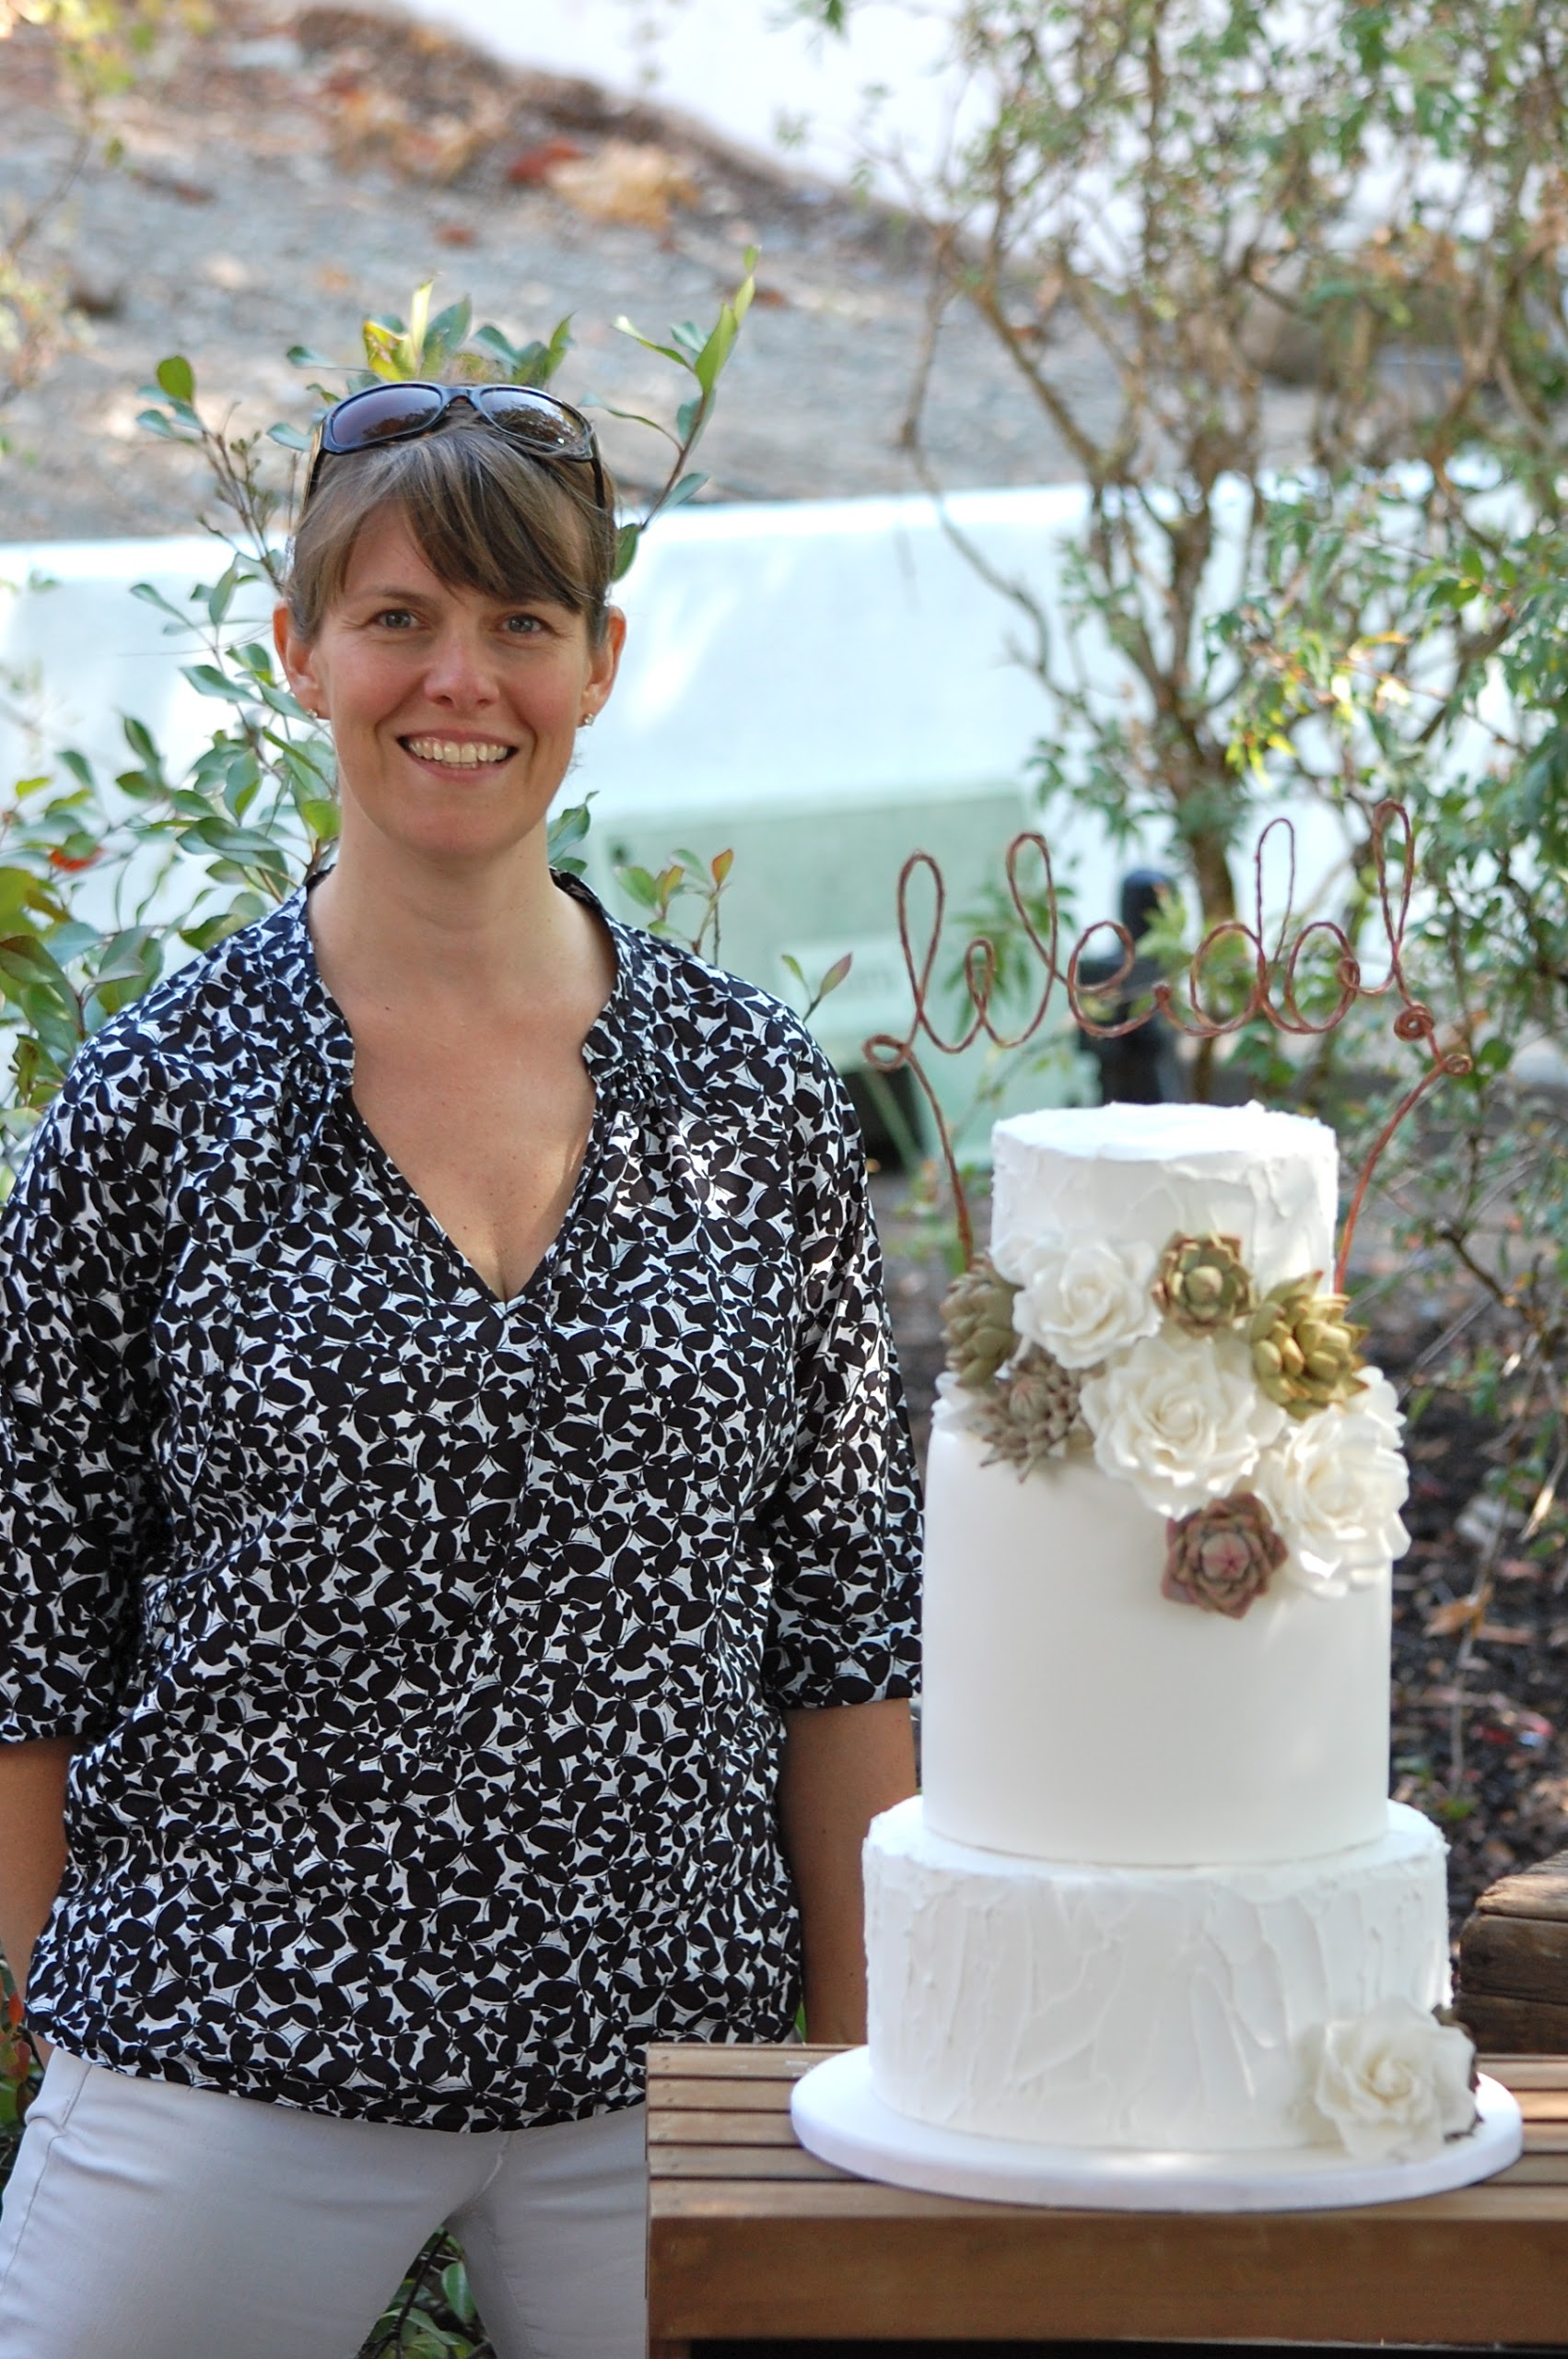 Cake Designer Standing Beside a Beautiful Finished Cake